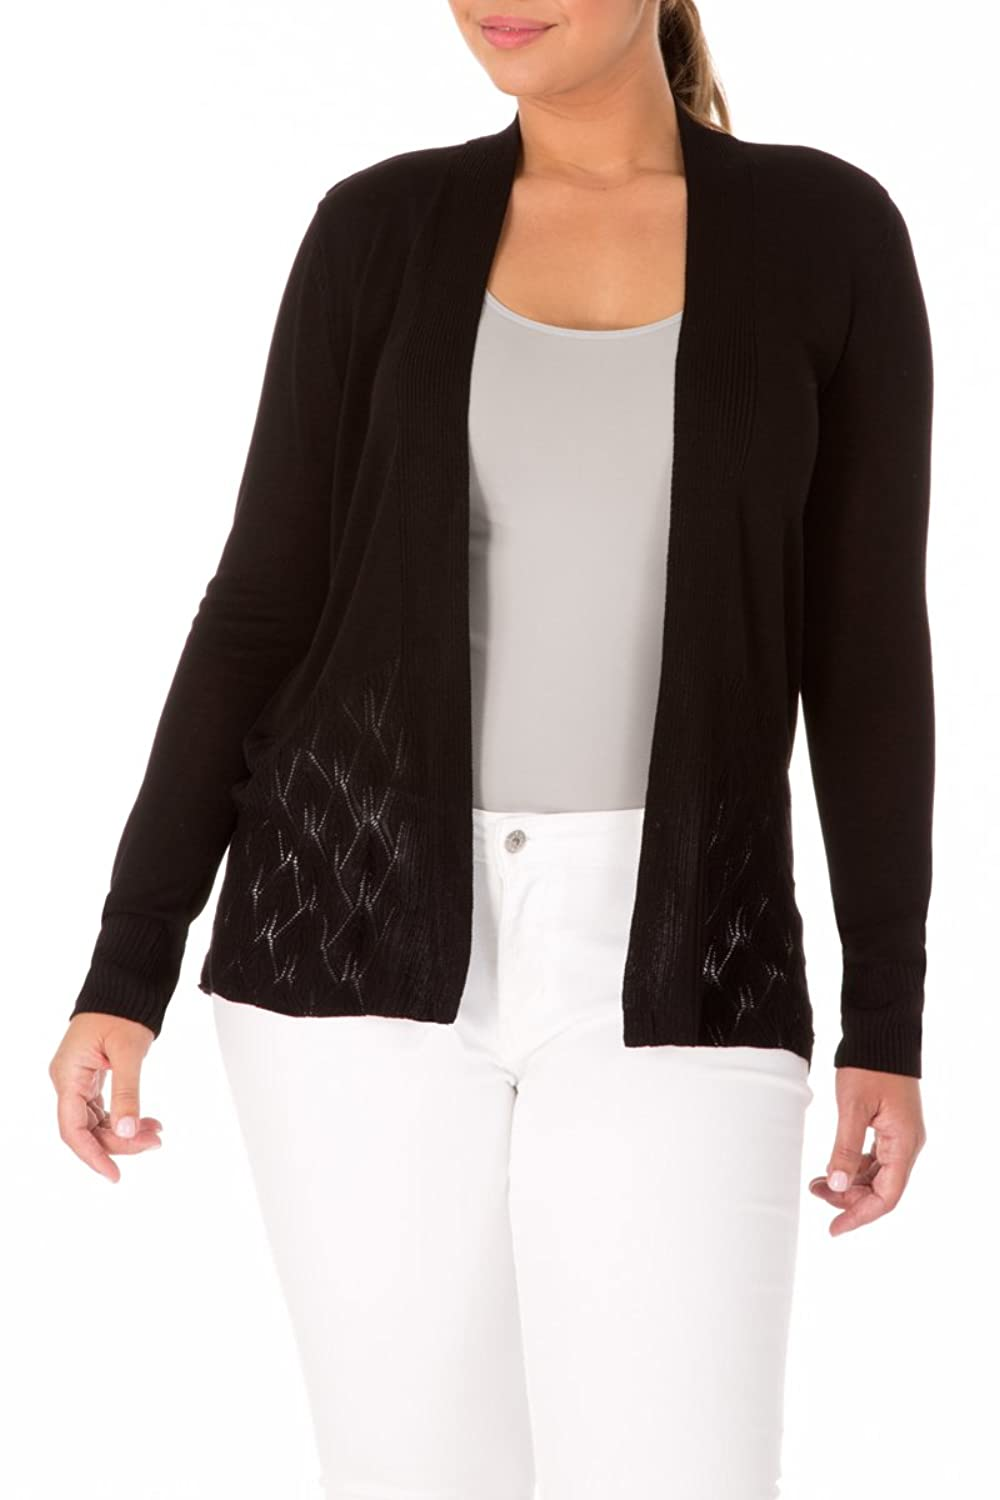 89th & Madison Open Front Cardigan